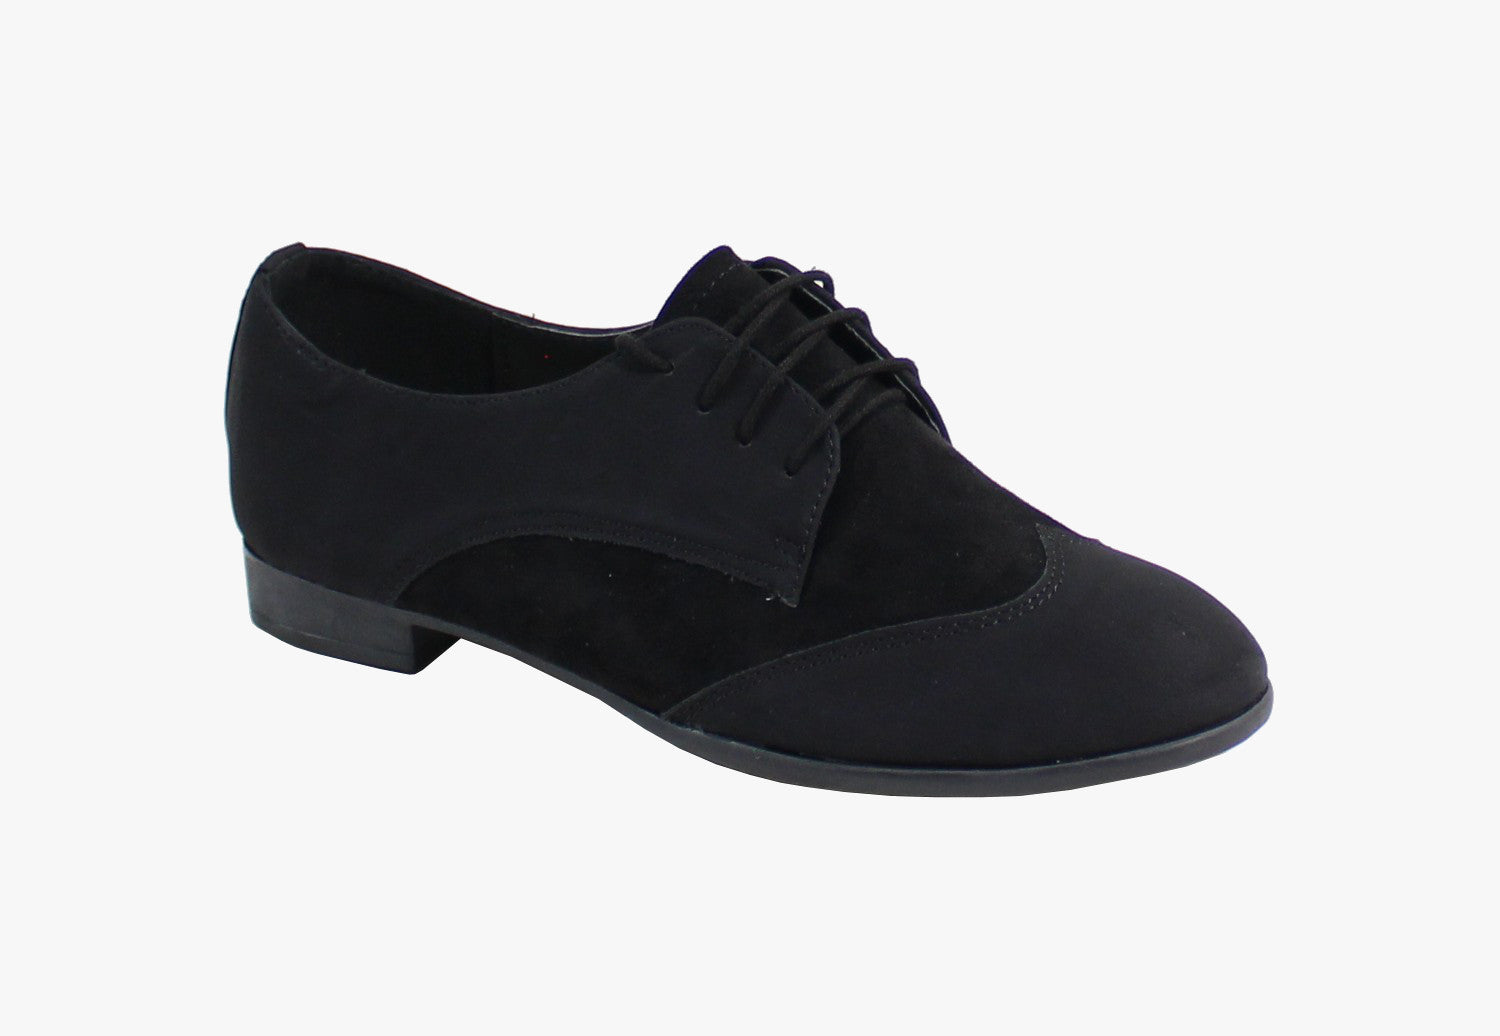 Chaussure Style Derby - Ultra Tendance